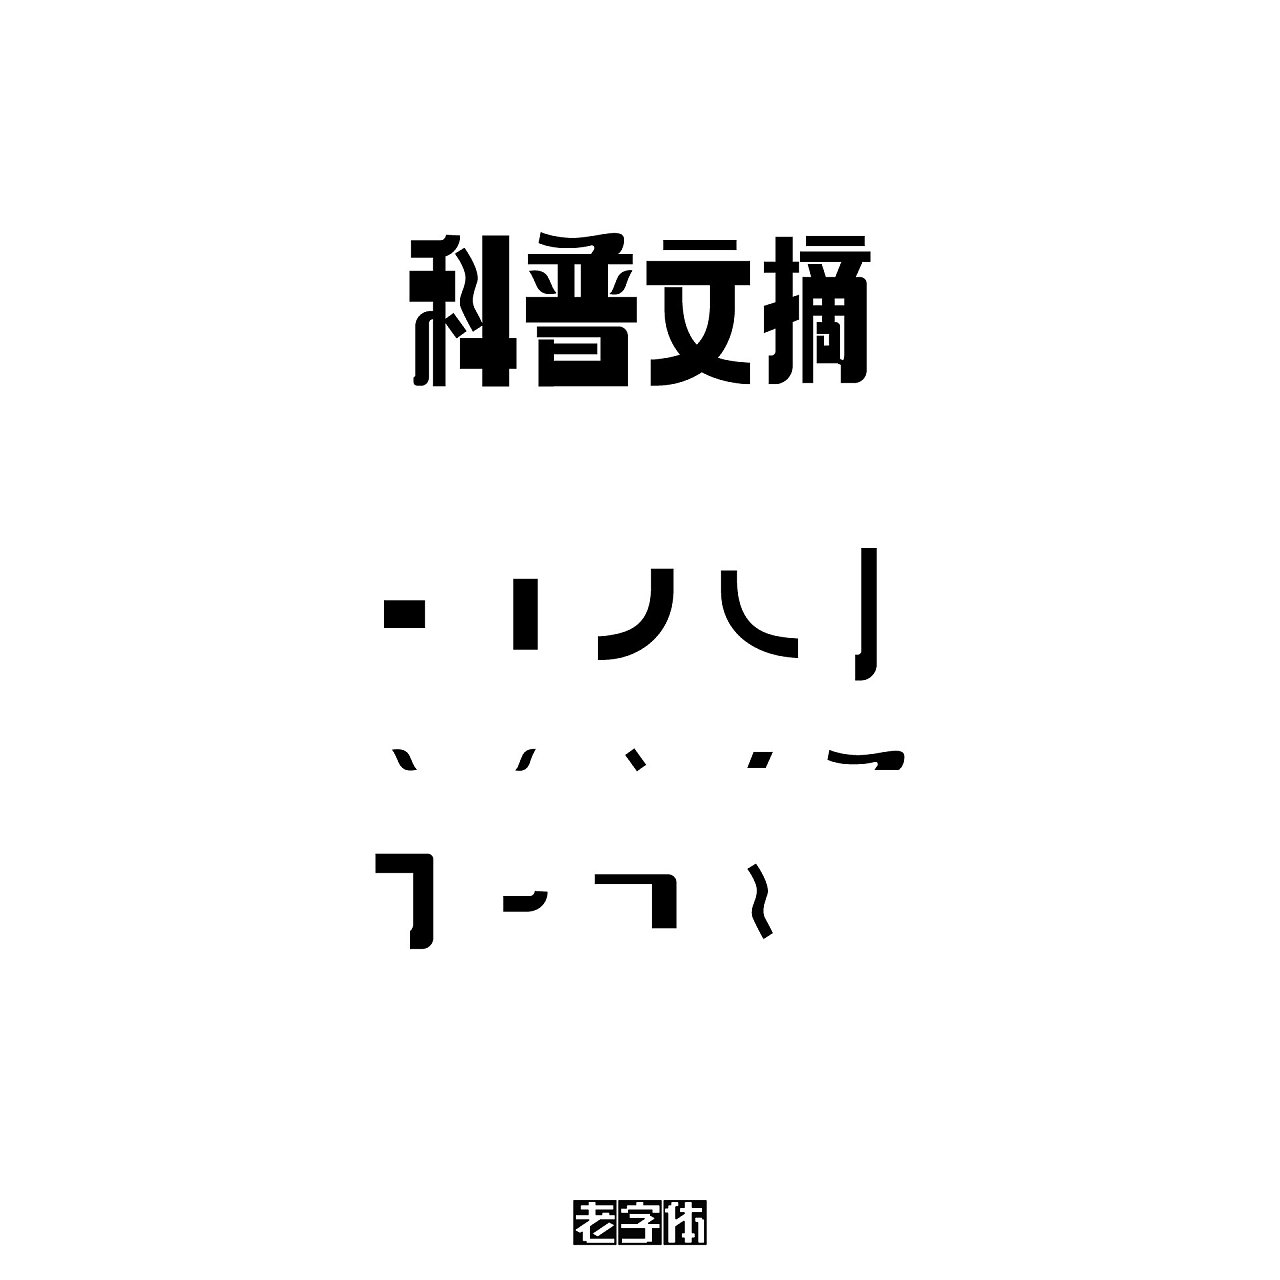 14P Chinese font tracing and decomposition